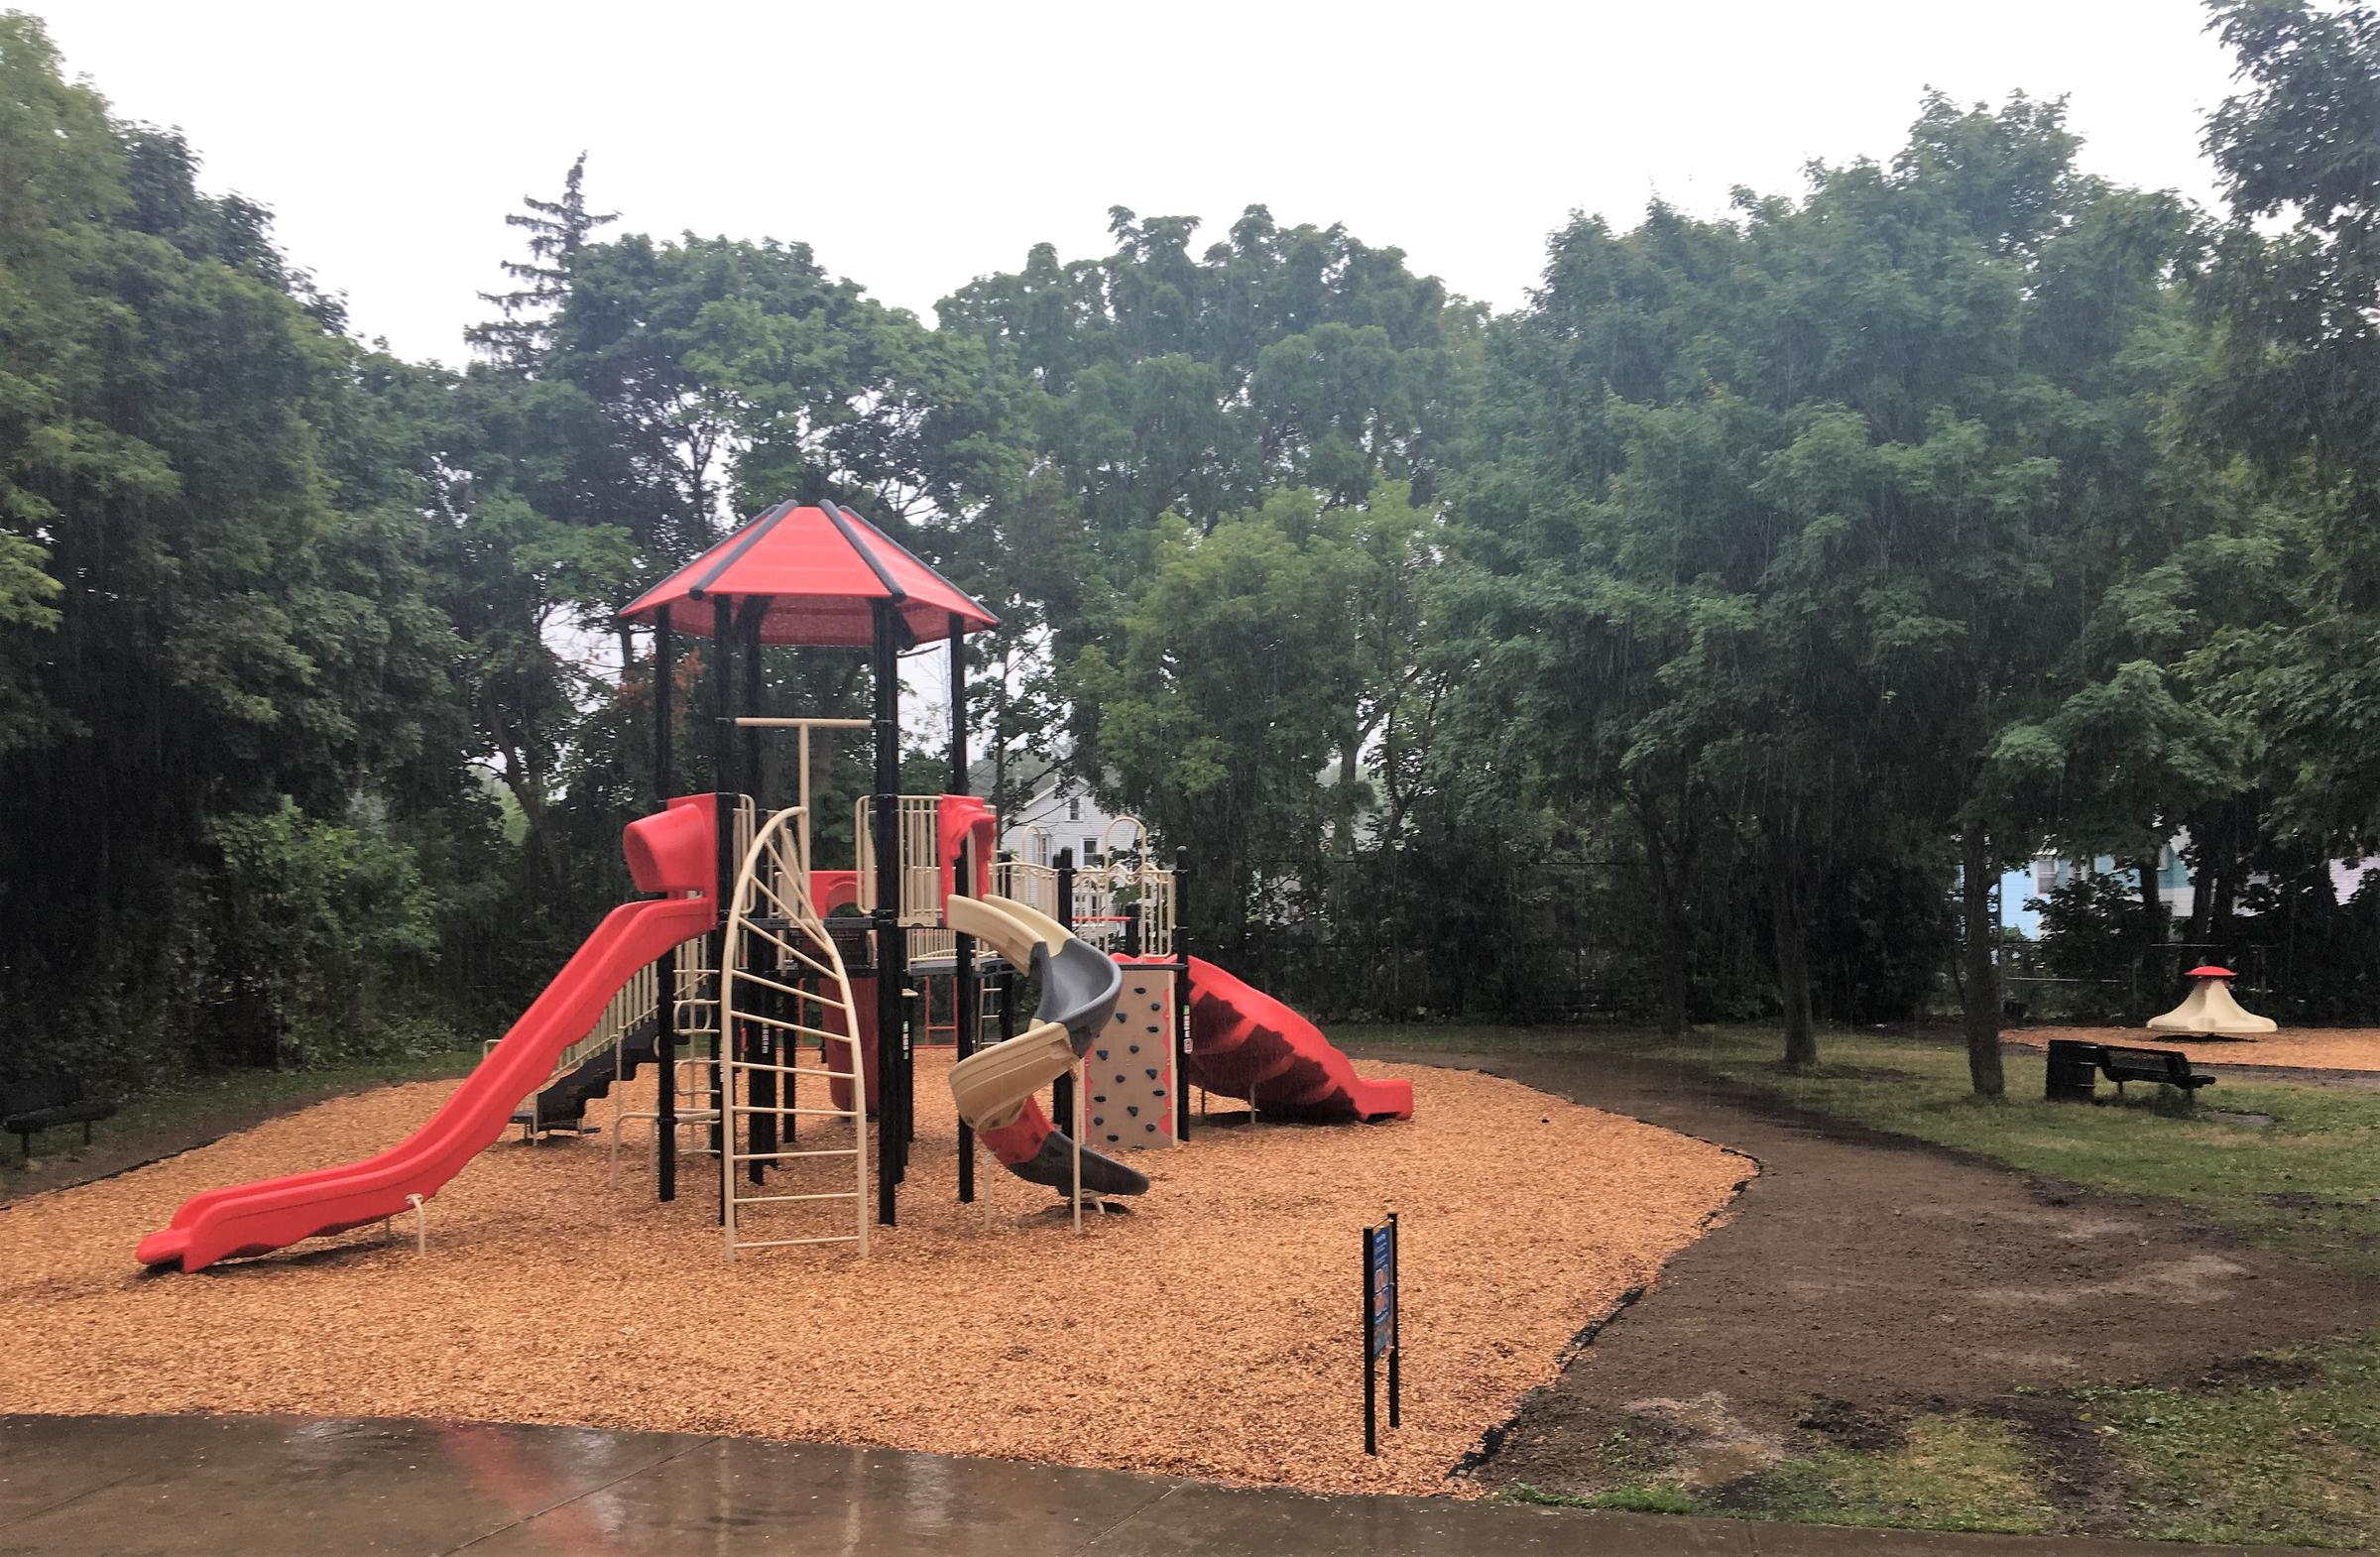 New Playground Brings Physical, Social, Emotional Benefits